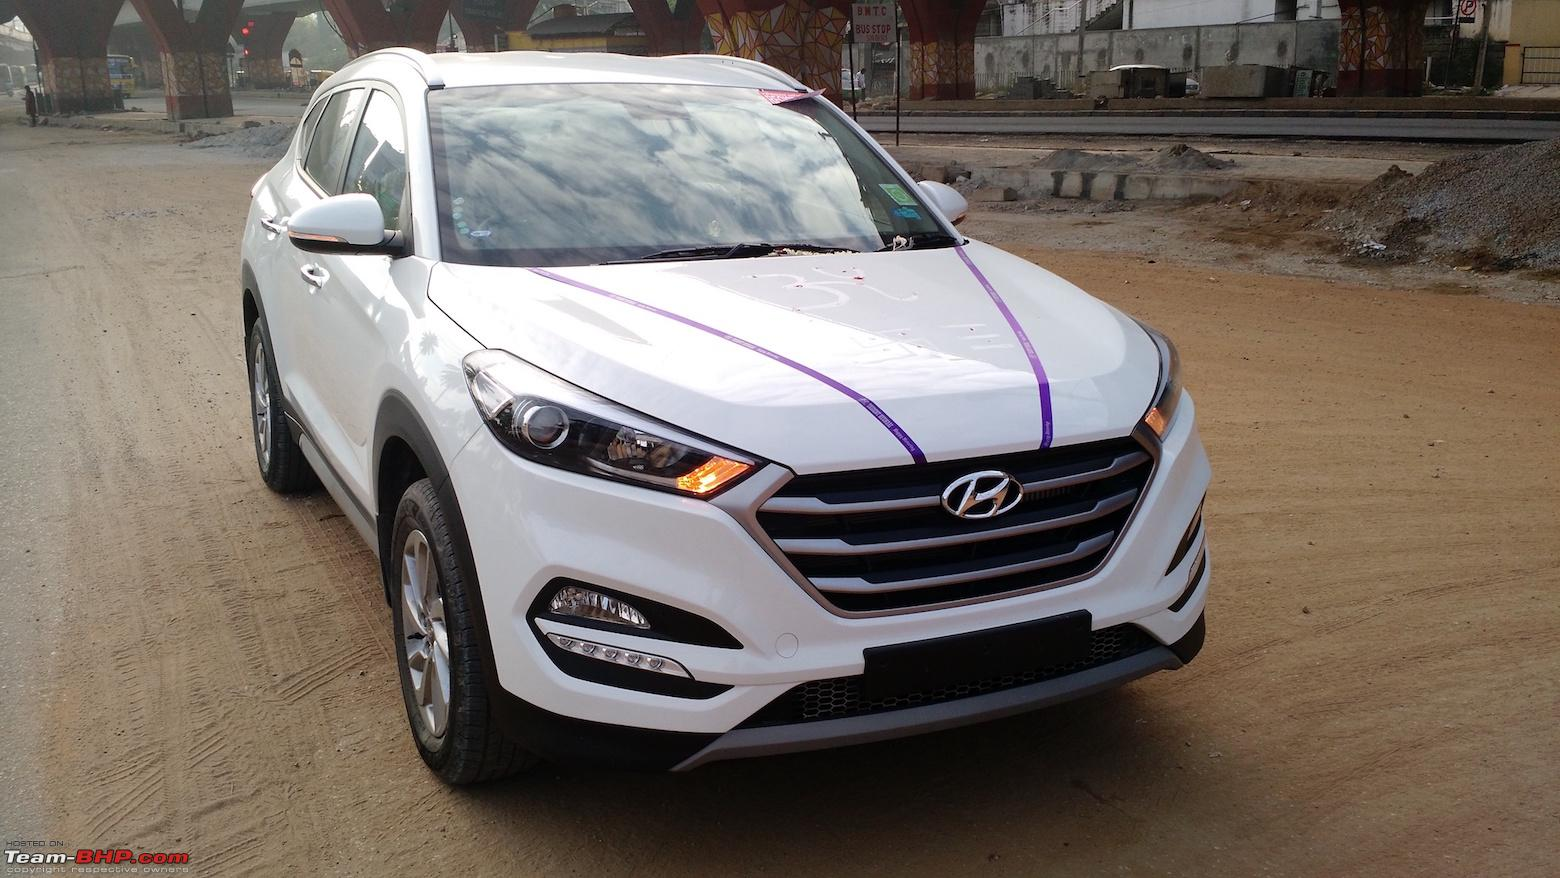 it s the below model make gls car philippine crdi out after impressed mostly news being just range hard going to what tucson their hyundai topper with review